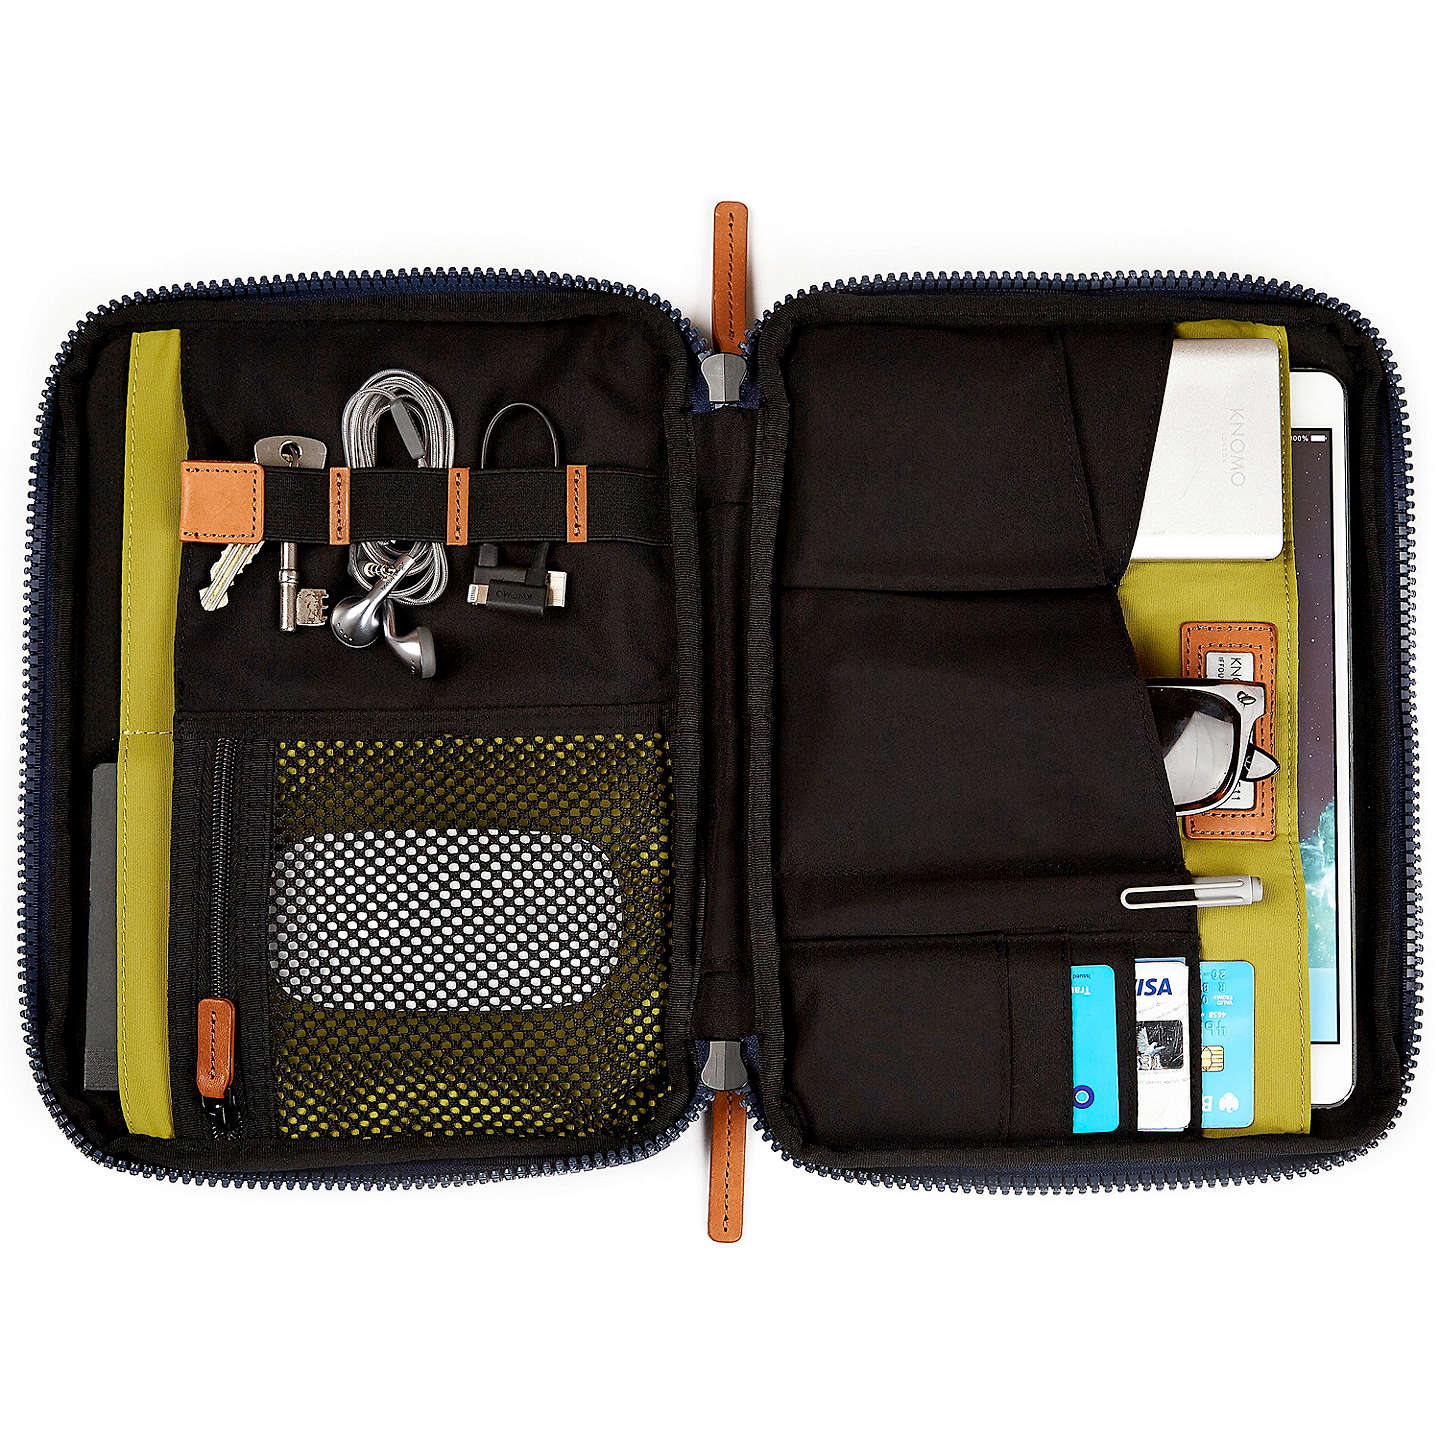 "BuyKnomo Mayfair Knomad Water-Resistant Tech Organiser/Case for Tablets up to 10.5"", Blue Online at johnlewis.com"